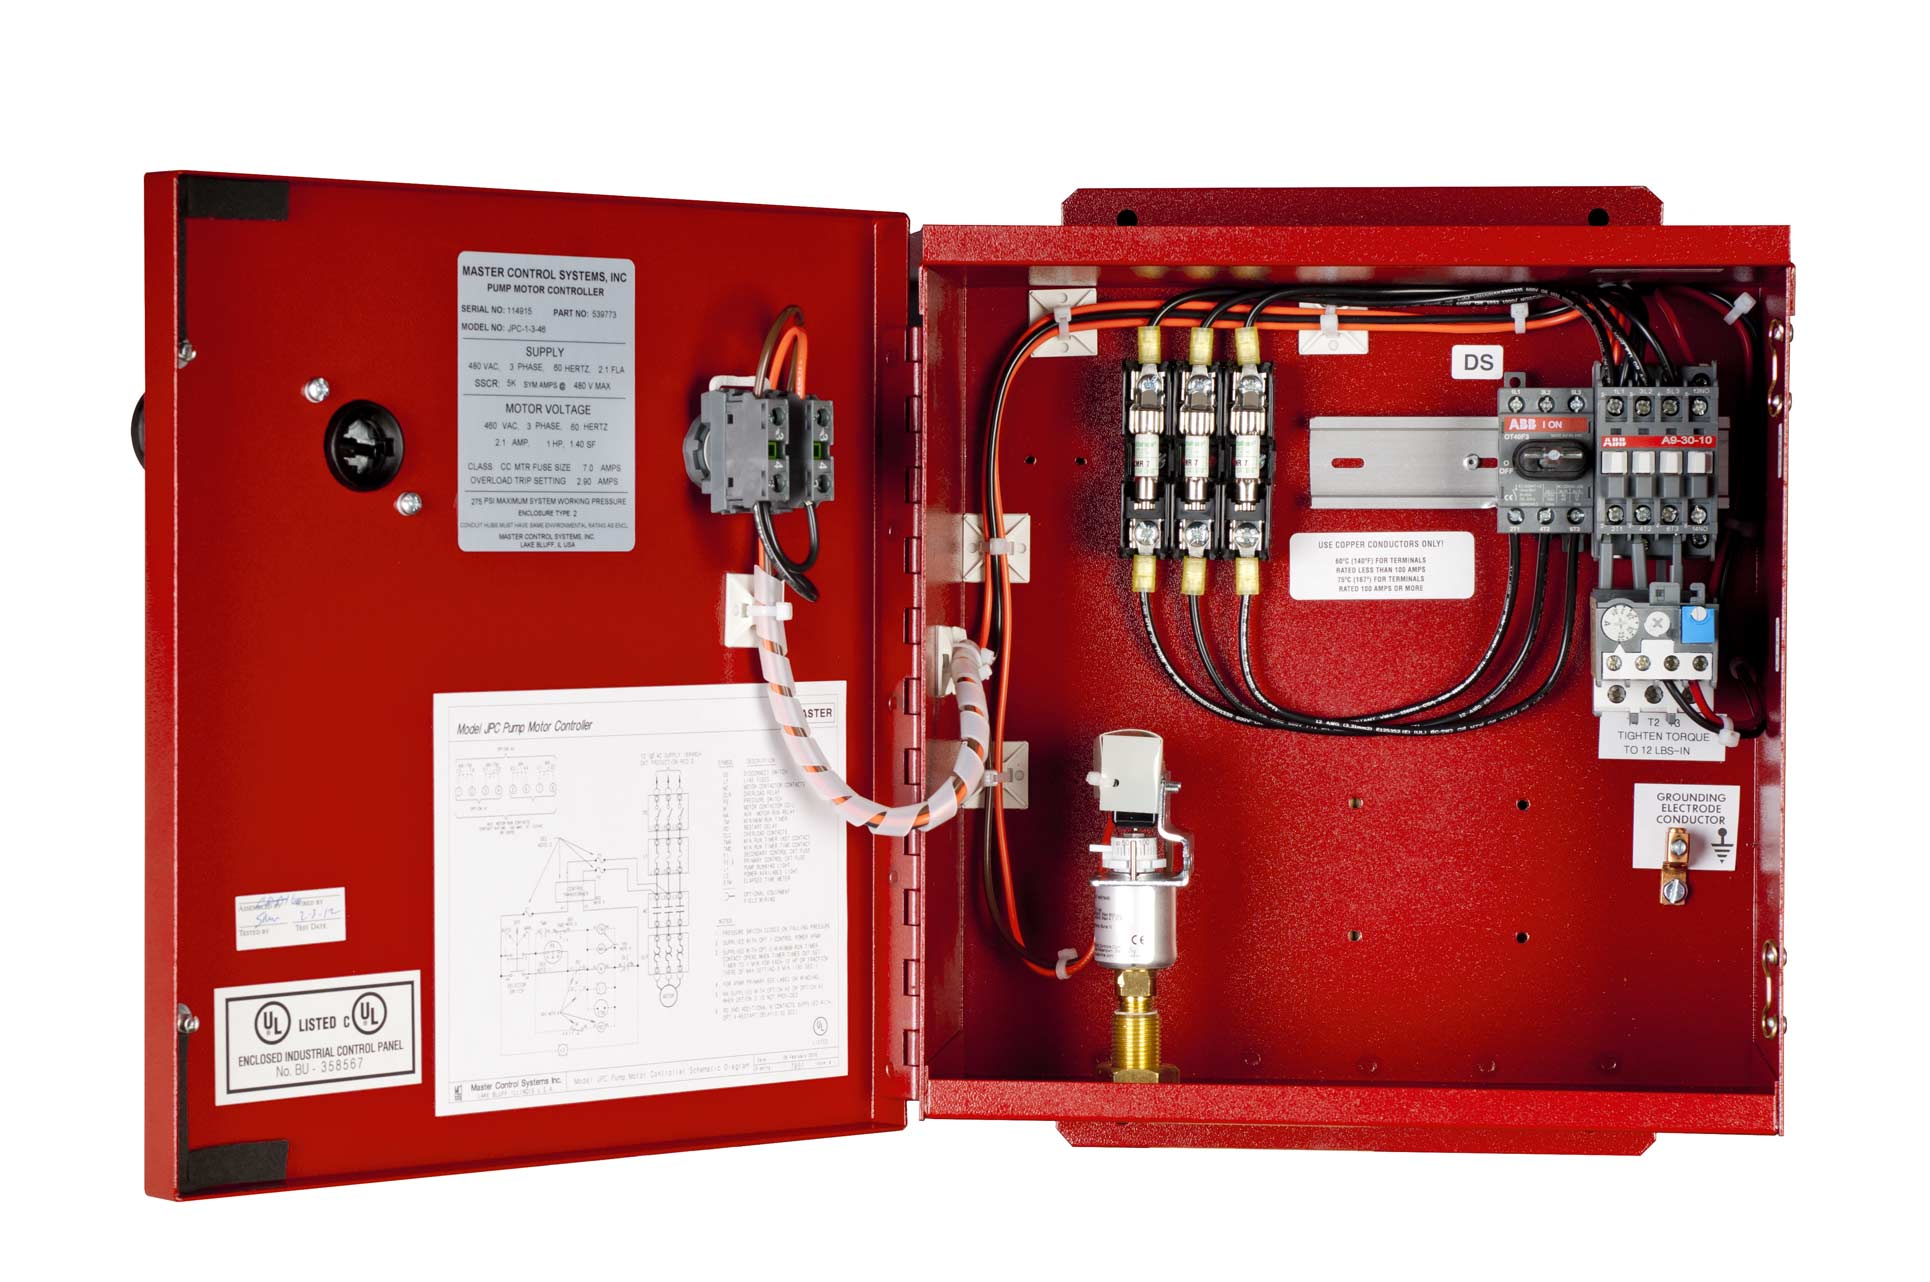 tornatech electric fire pump controller manual